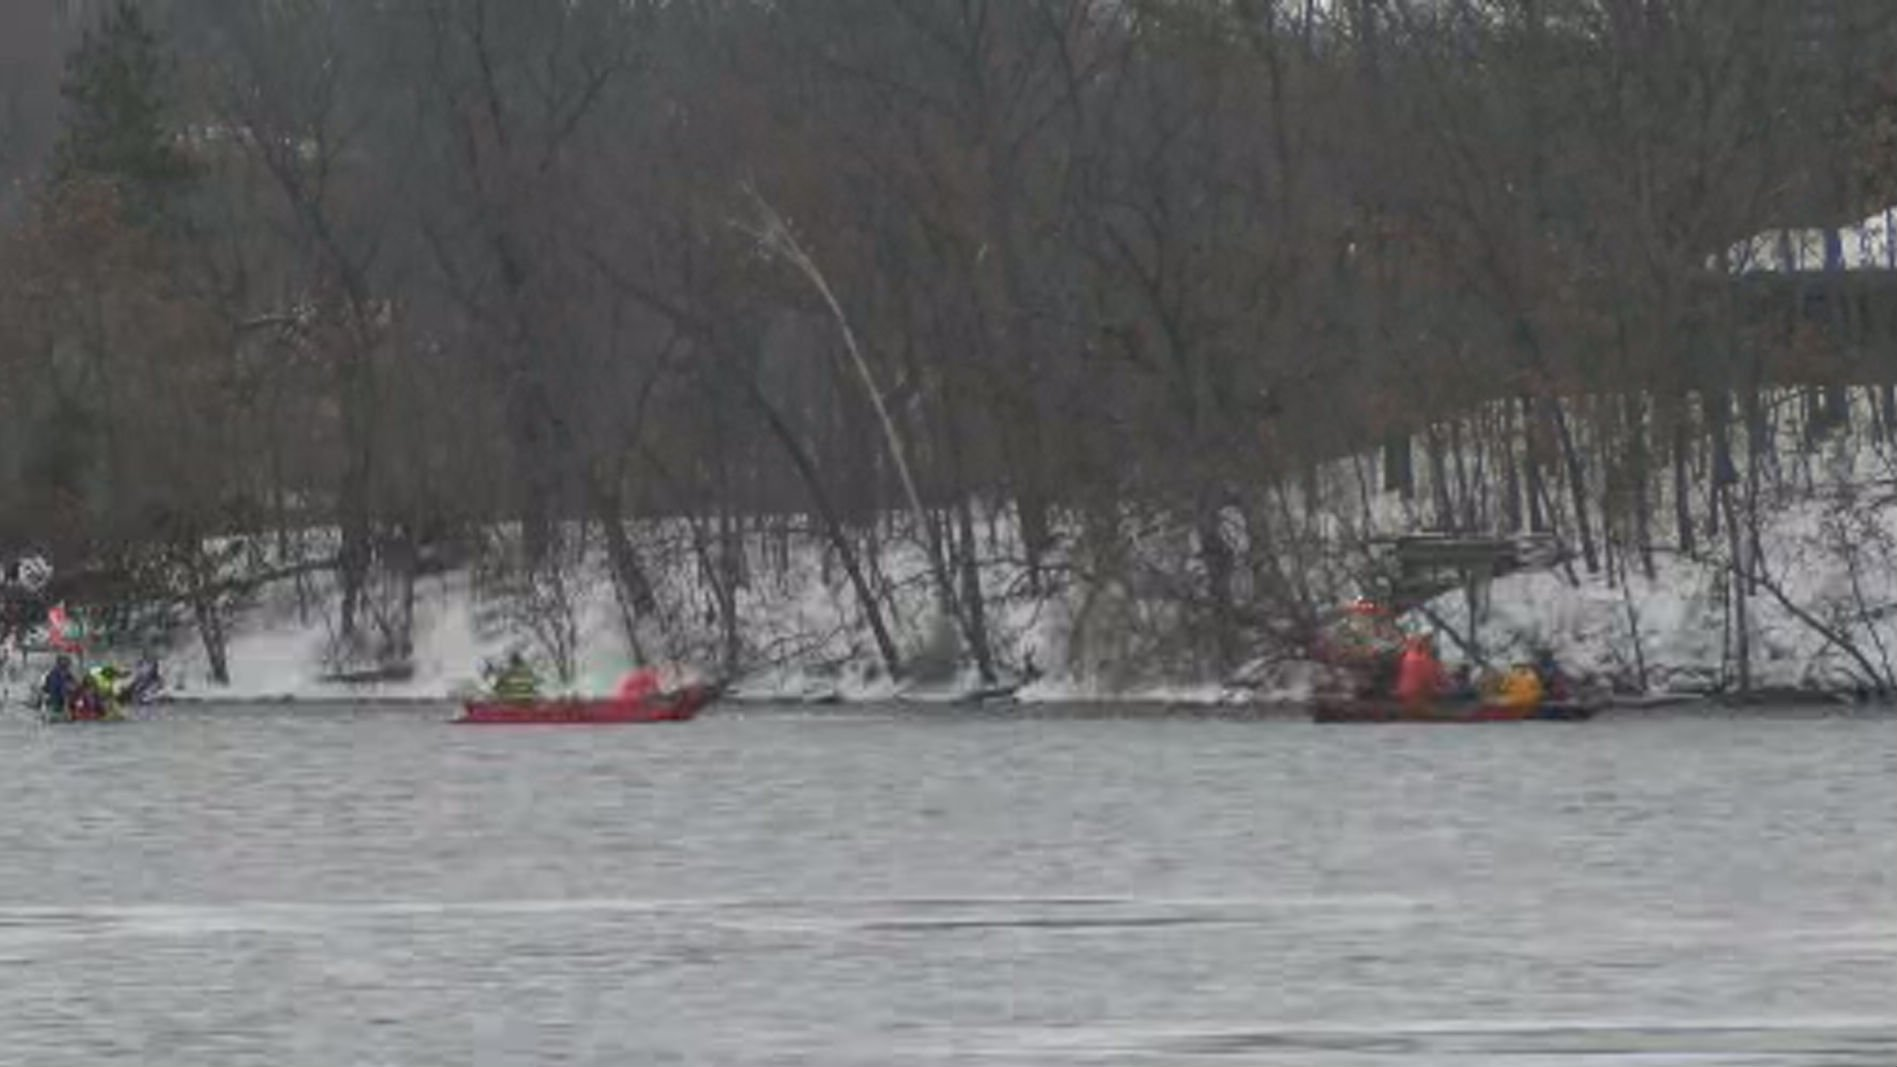 New Trier graduates drown in Wisconsin canoe accident